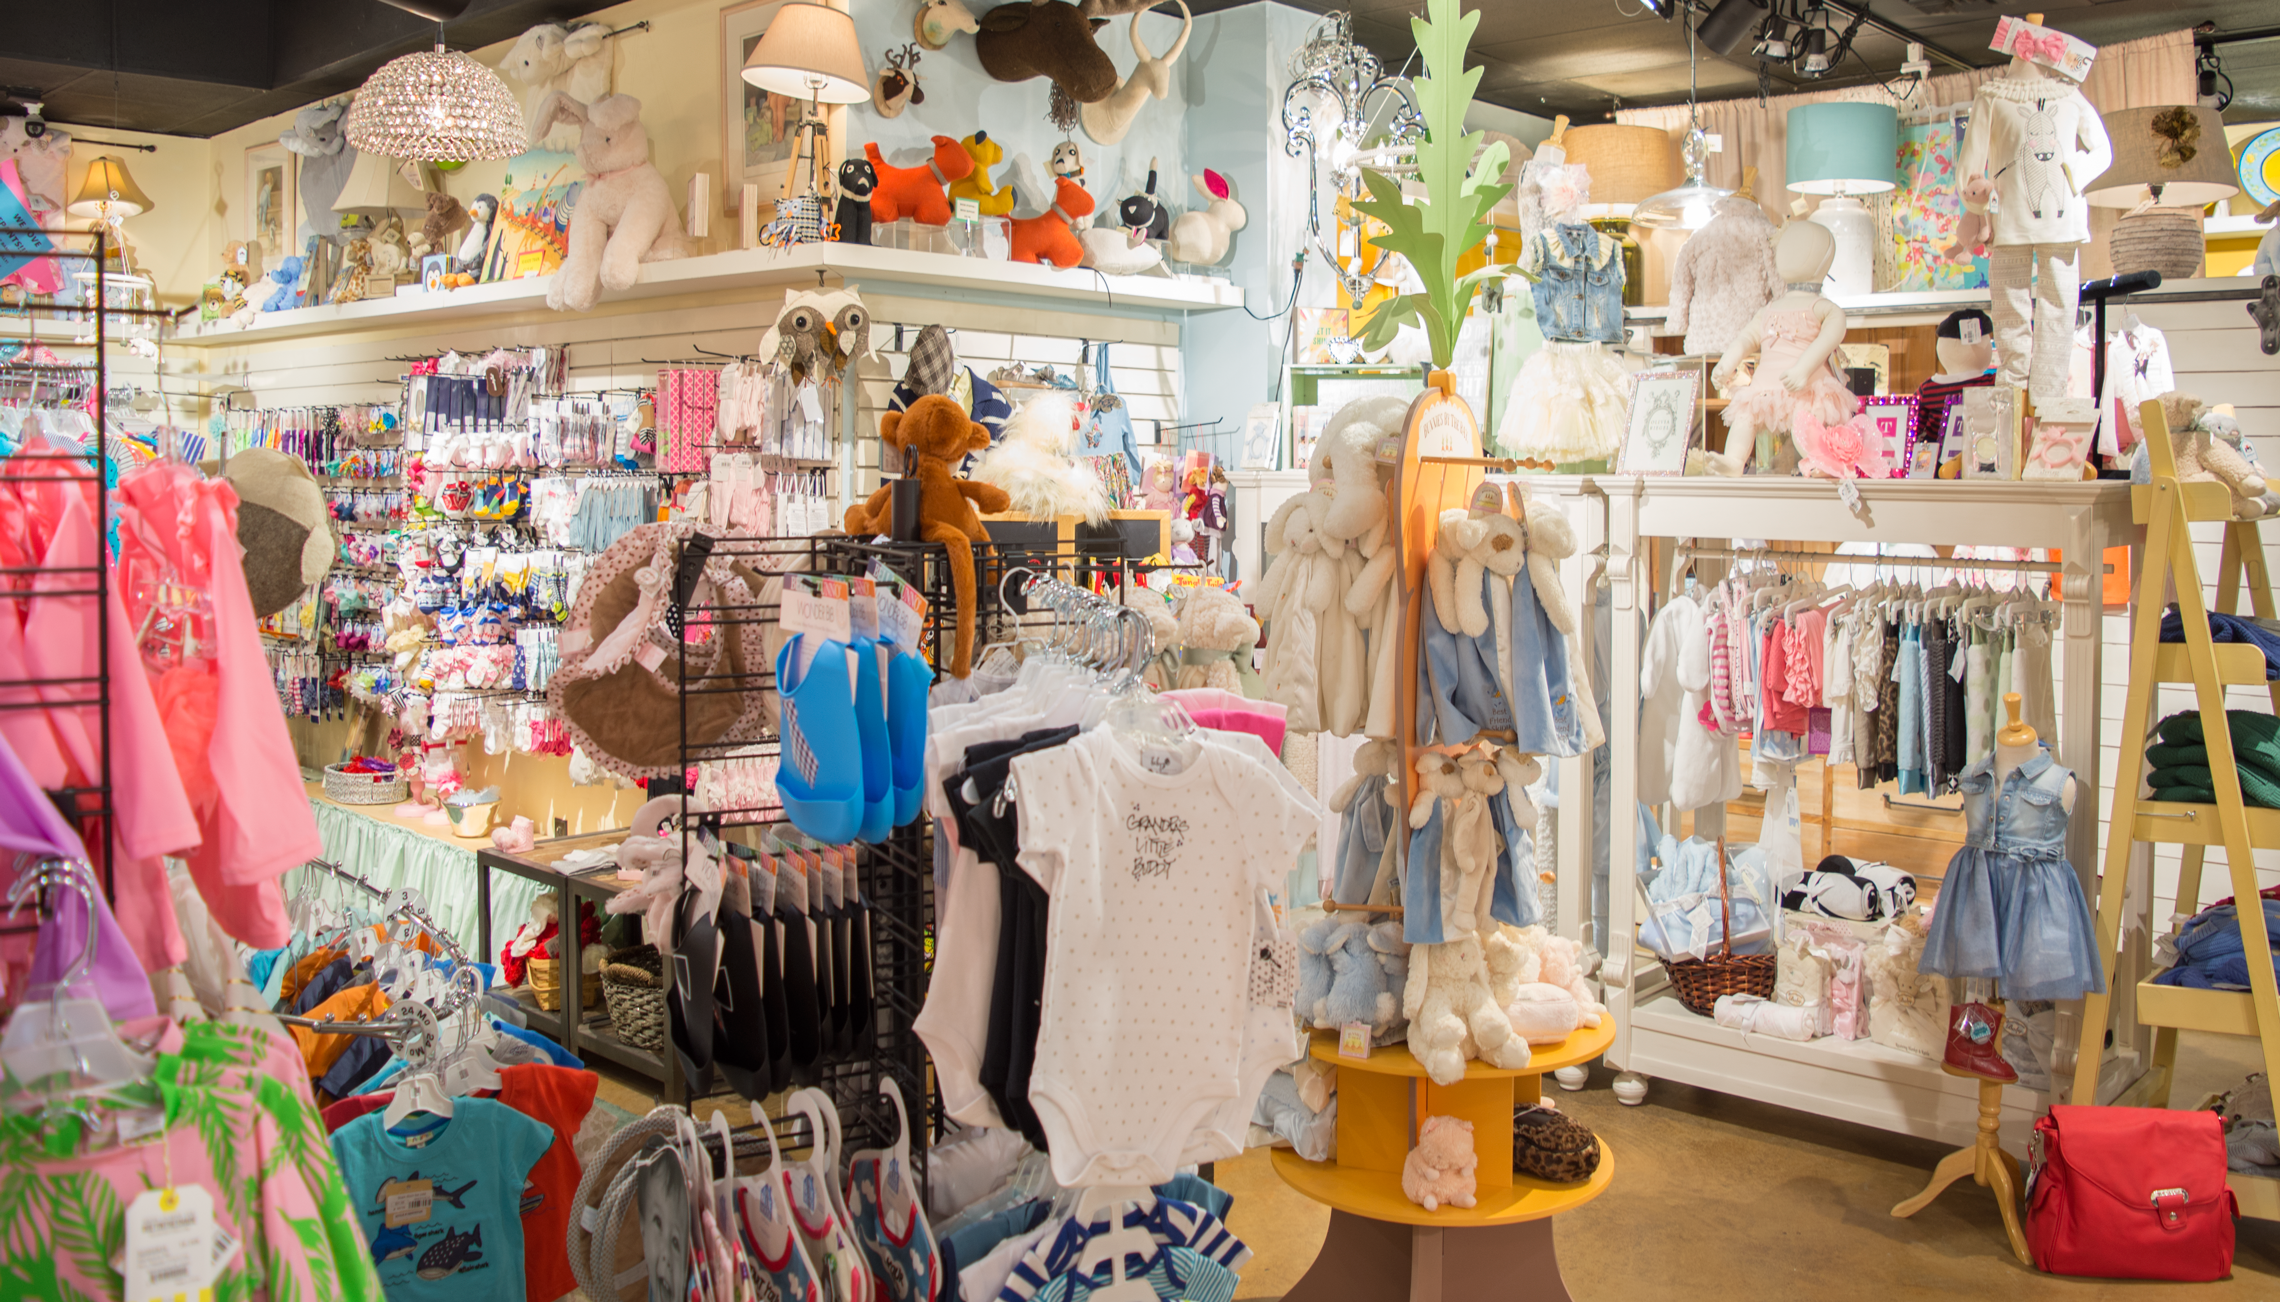 Recently Expanded - More space for more adorable clothing and accessories.